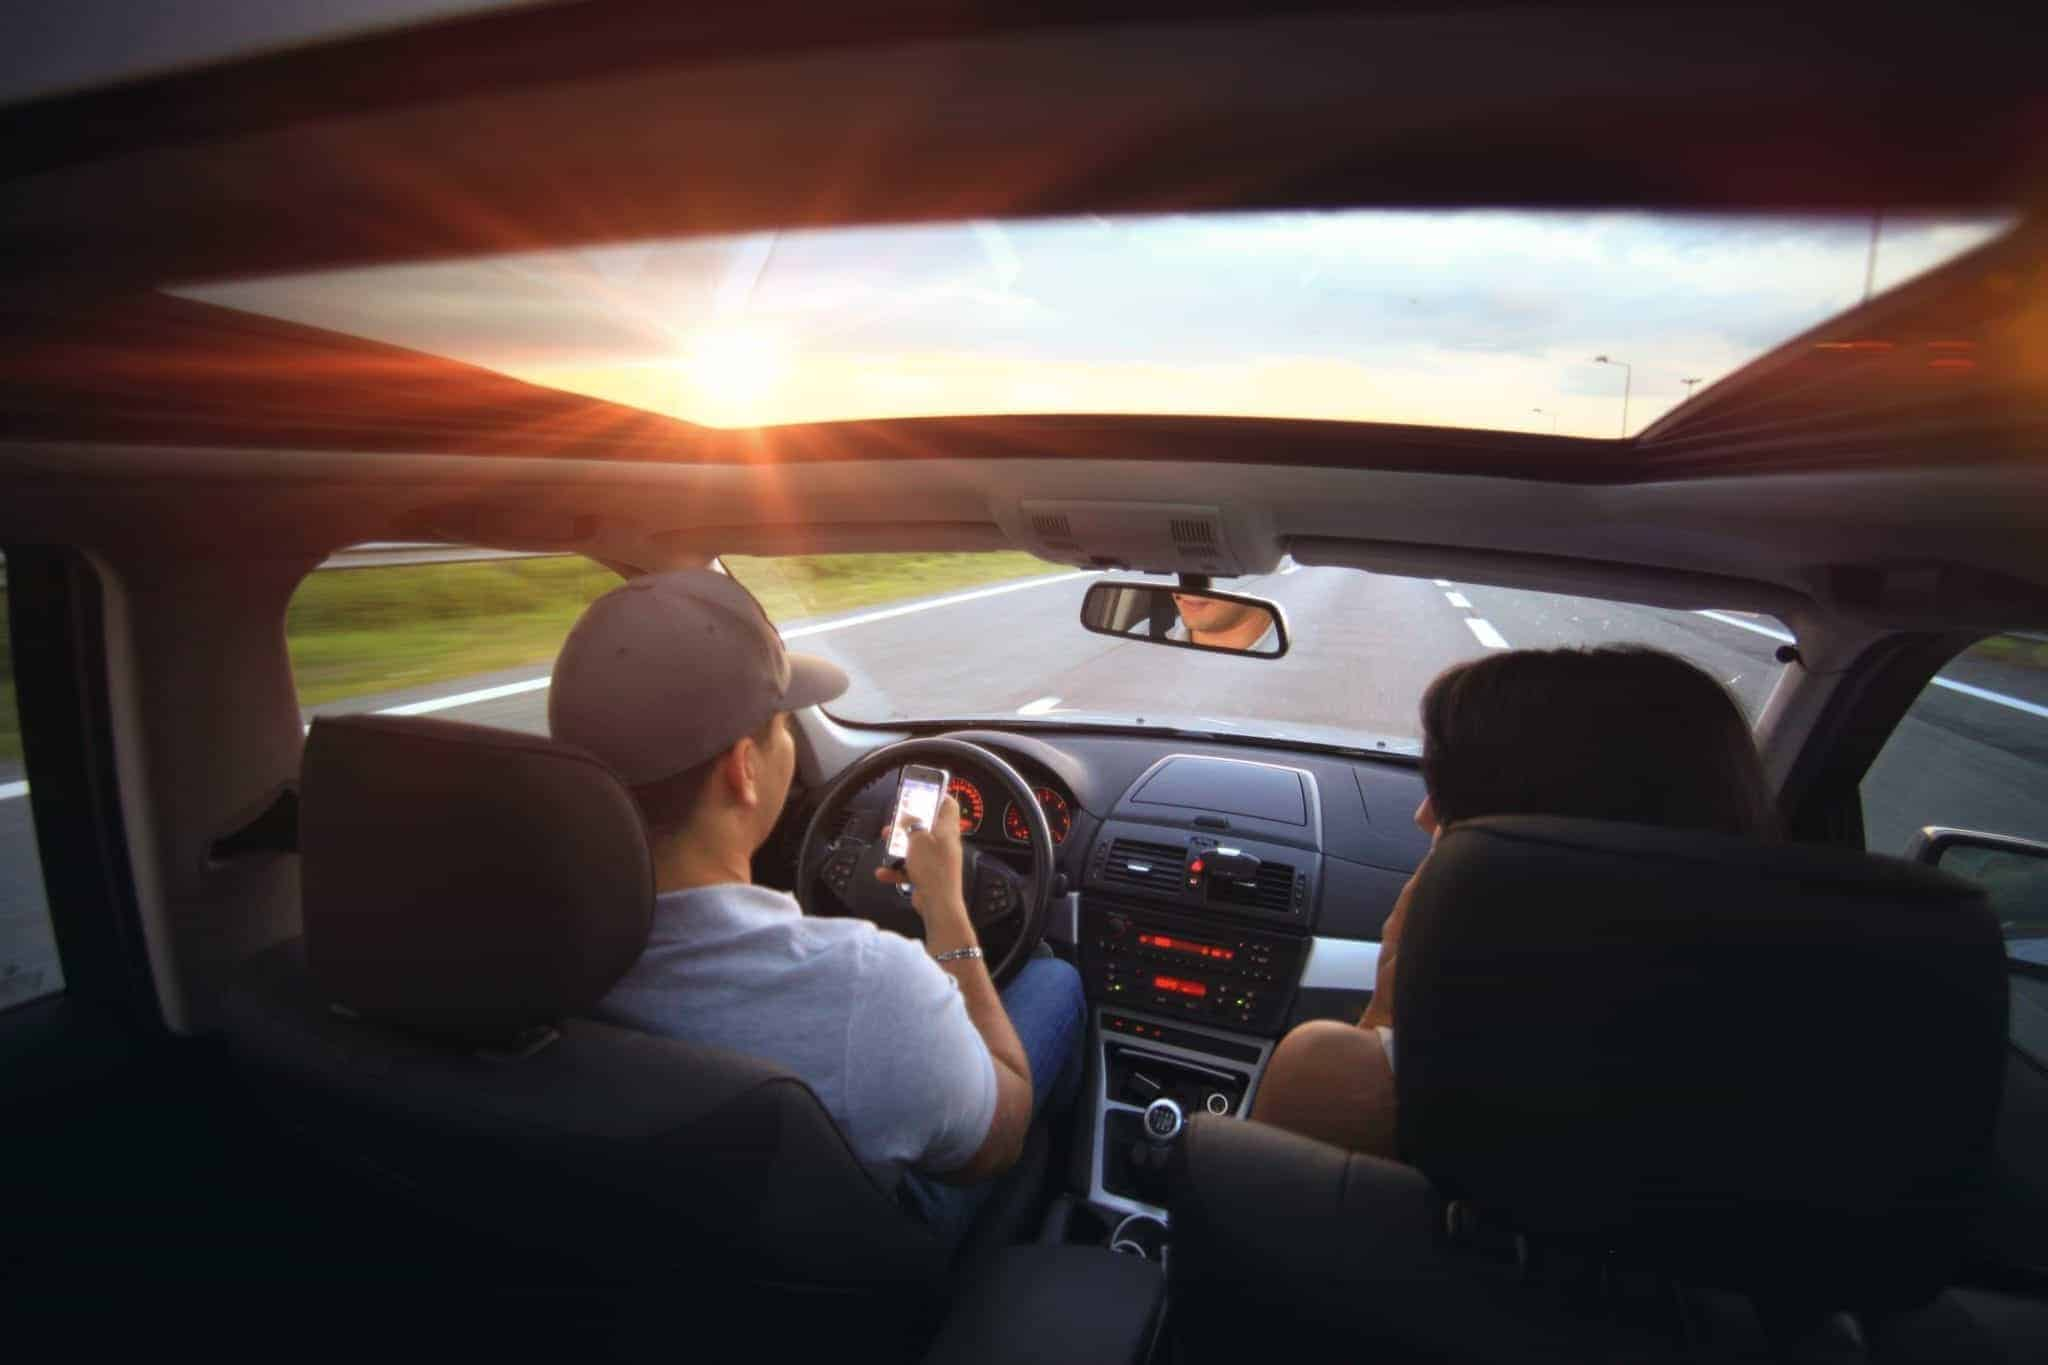 The Revised Regulations are Out! The 7 Commandments of Distraction-Free Driving